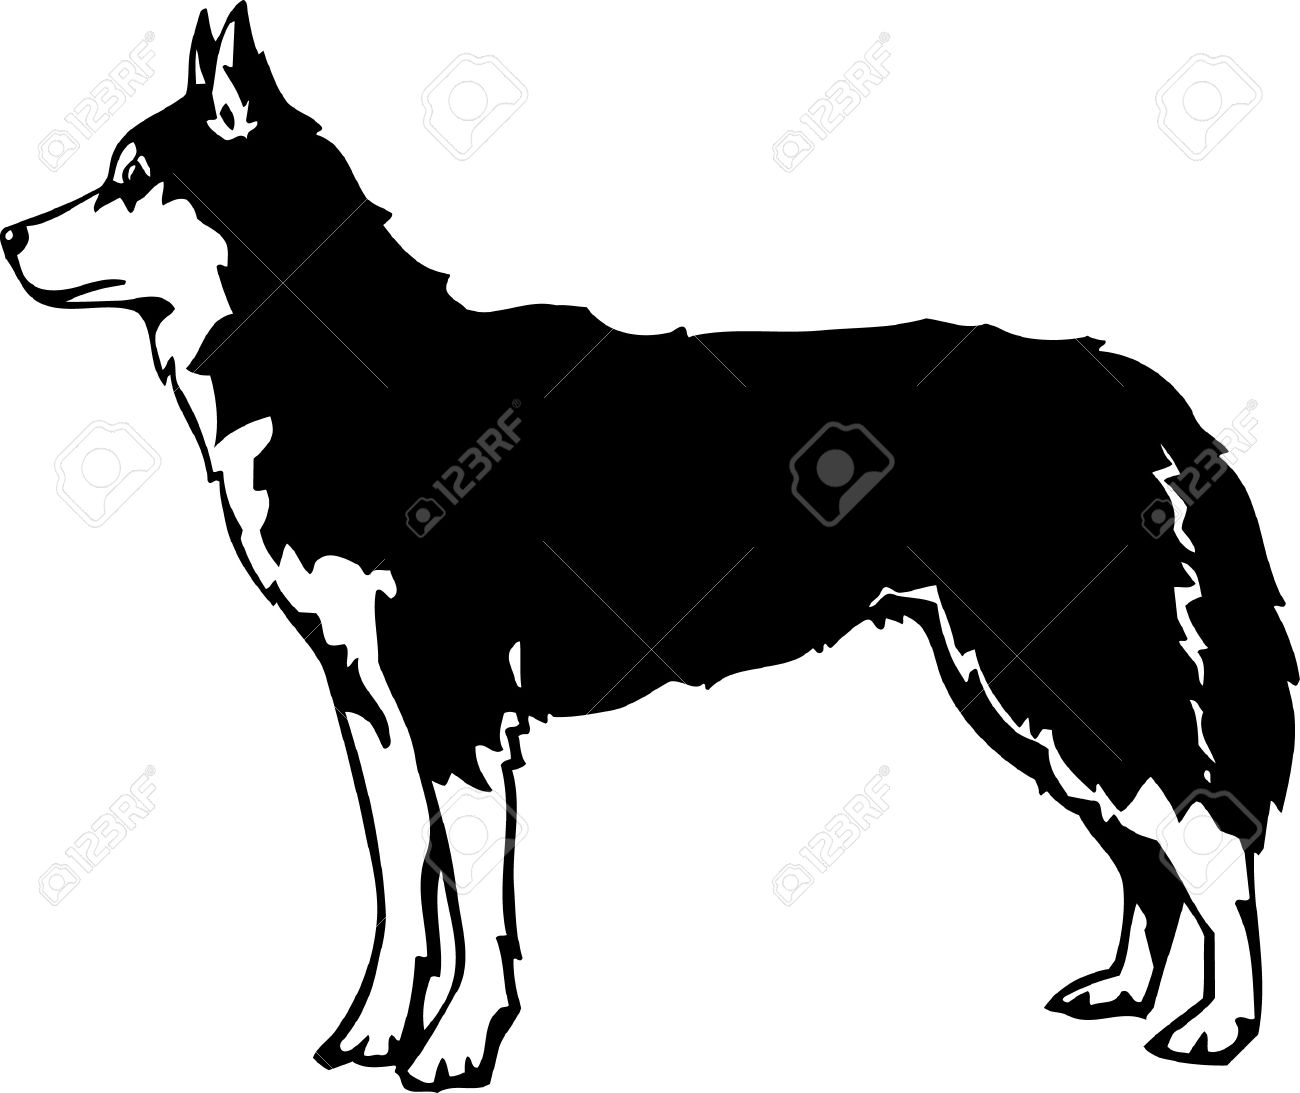 Siberian Husky clipart #9, Download drawings